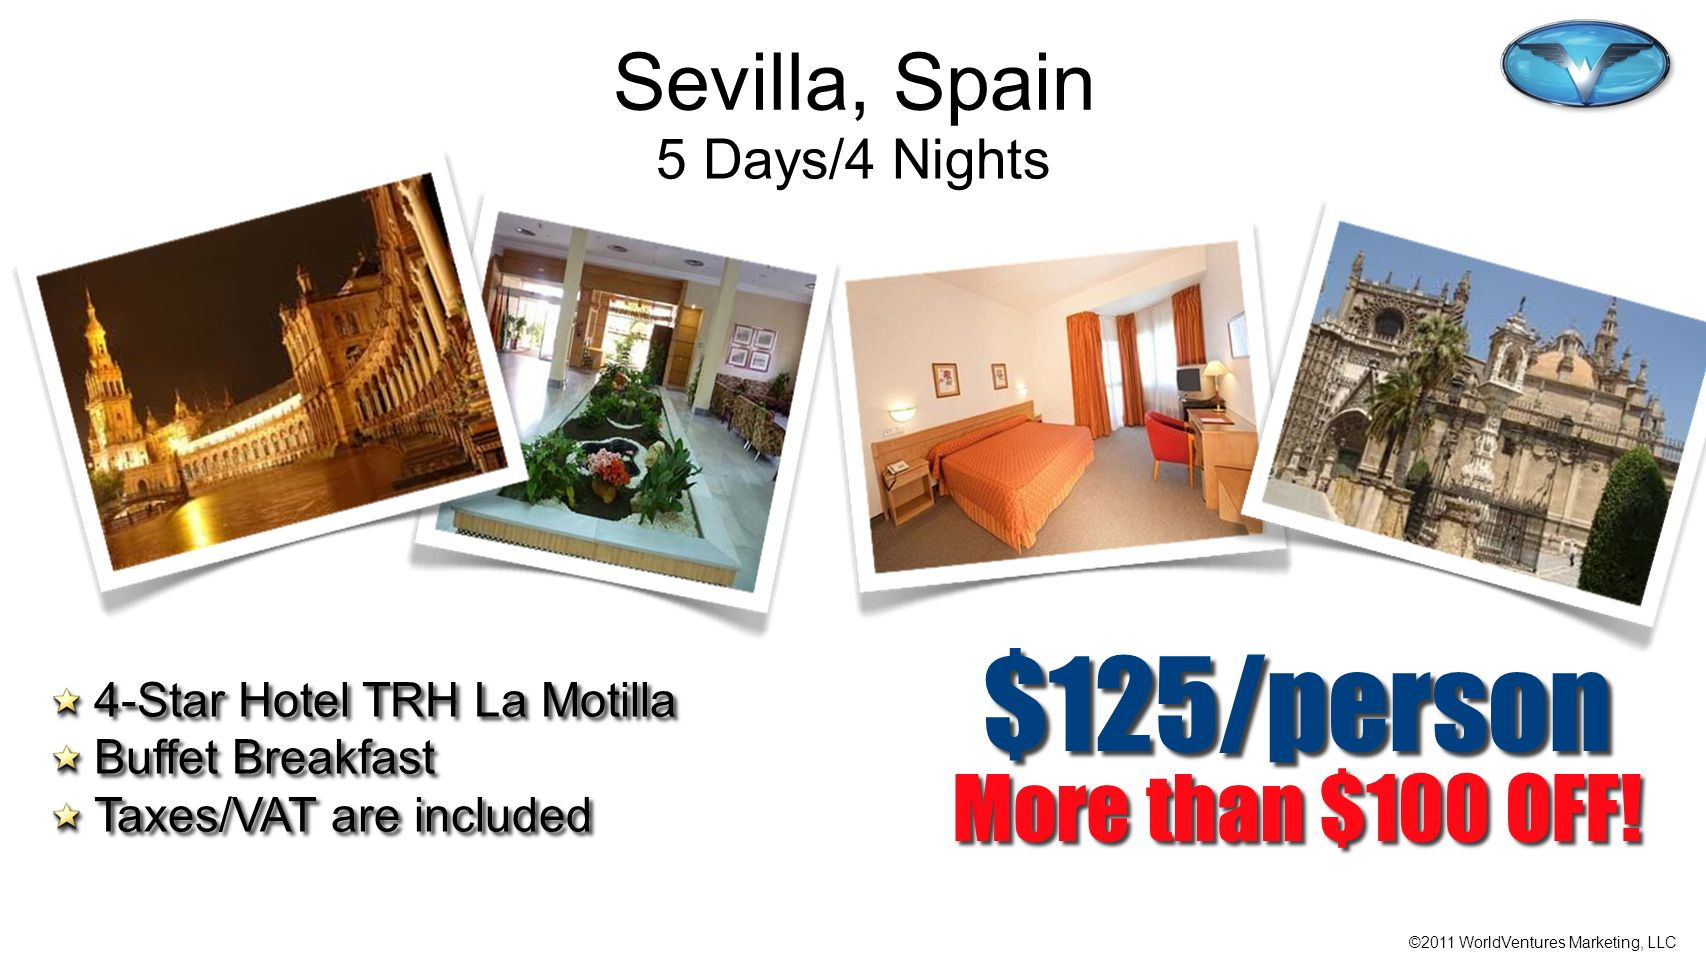 $125/person More than $100 OFF! Sevilla, Spain 5 Days/4 Nights